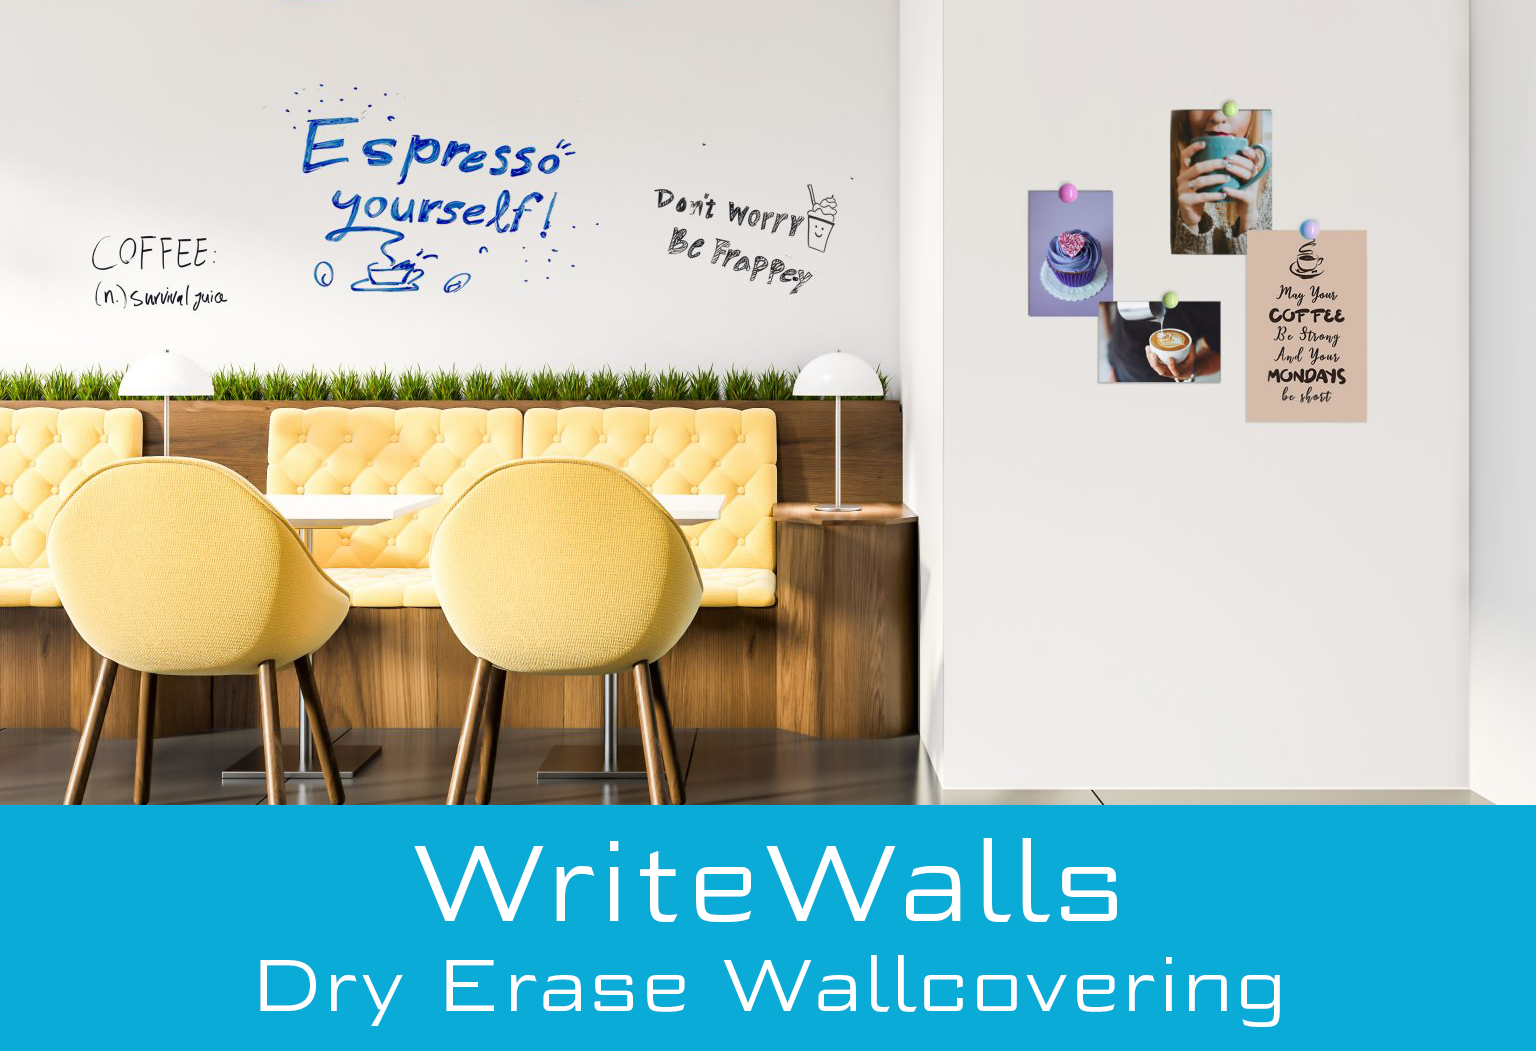 WriteWalls Dry Erase Wallcovering from LEVEY Wallcoverings